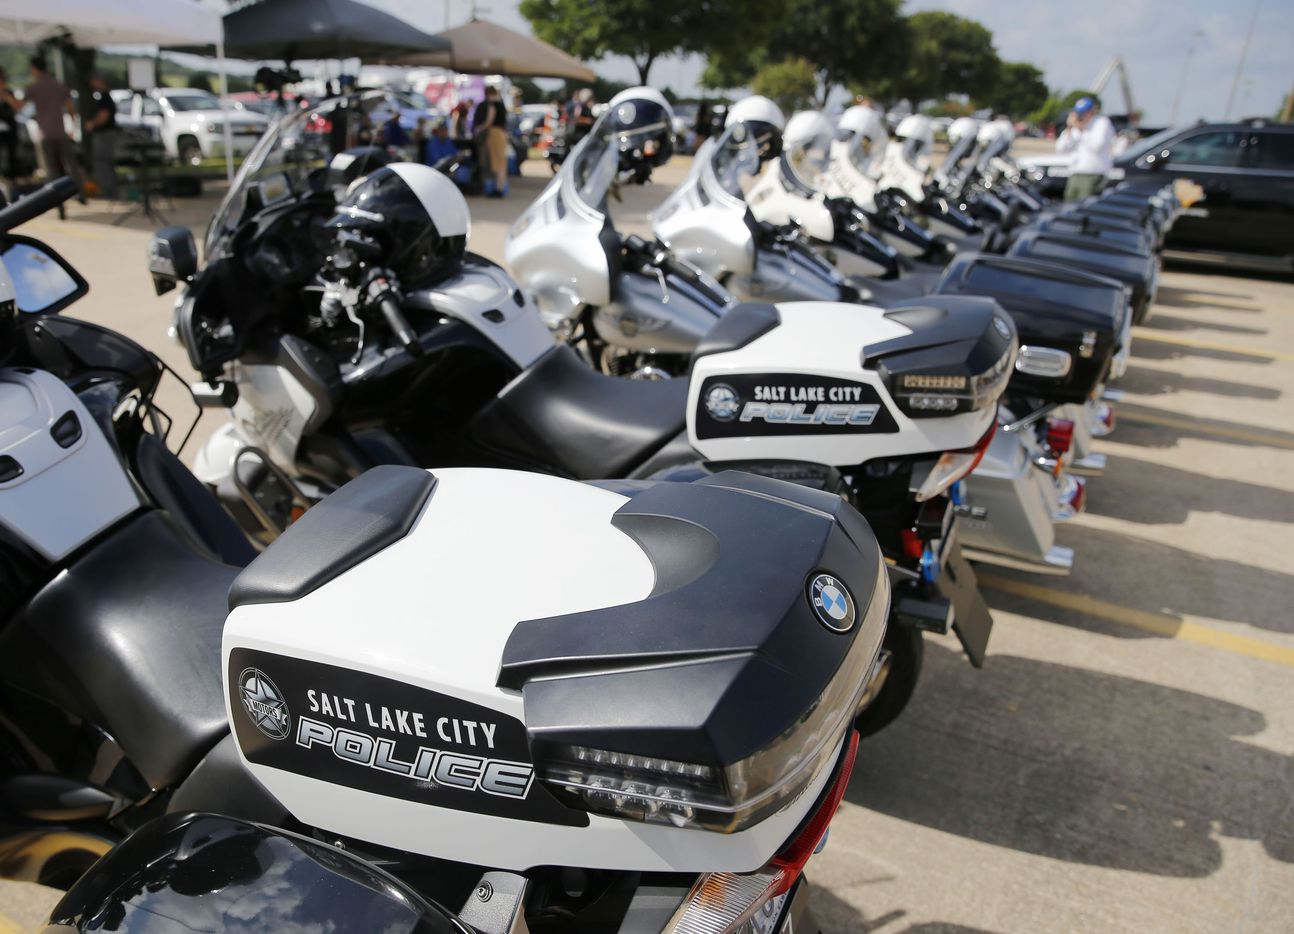 Motorcycle from Salt Lake City parked outside during a memorial service for DART Officer Brent Thompson at The Potter's House in Dallas on Wednesday, July 13, 2016. Thompson was one of five officers killed last week when a gunman opened fire during a Black Lives Matter rally in downtown Dallas.